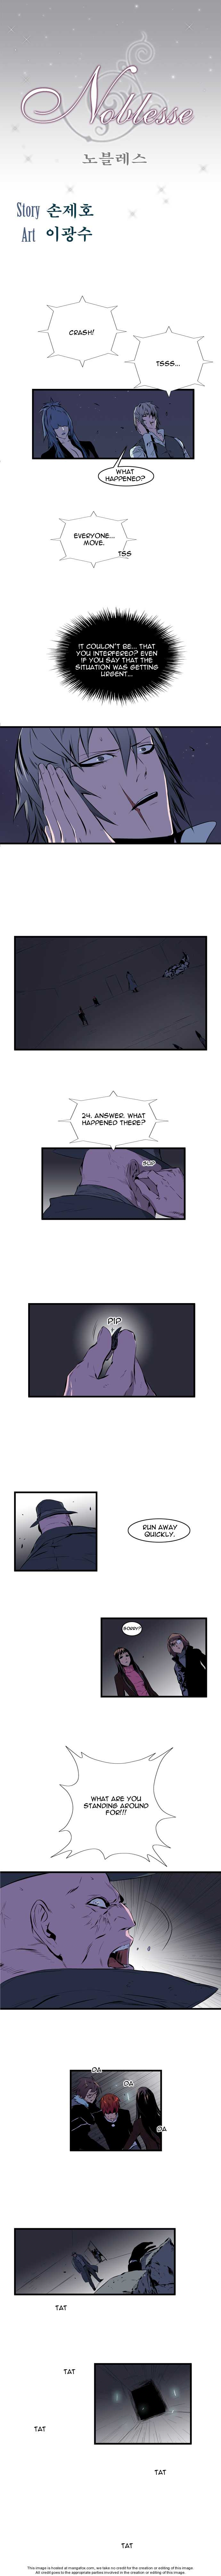 Noblesse 71 Page 1